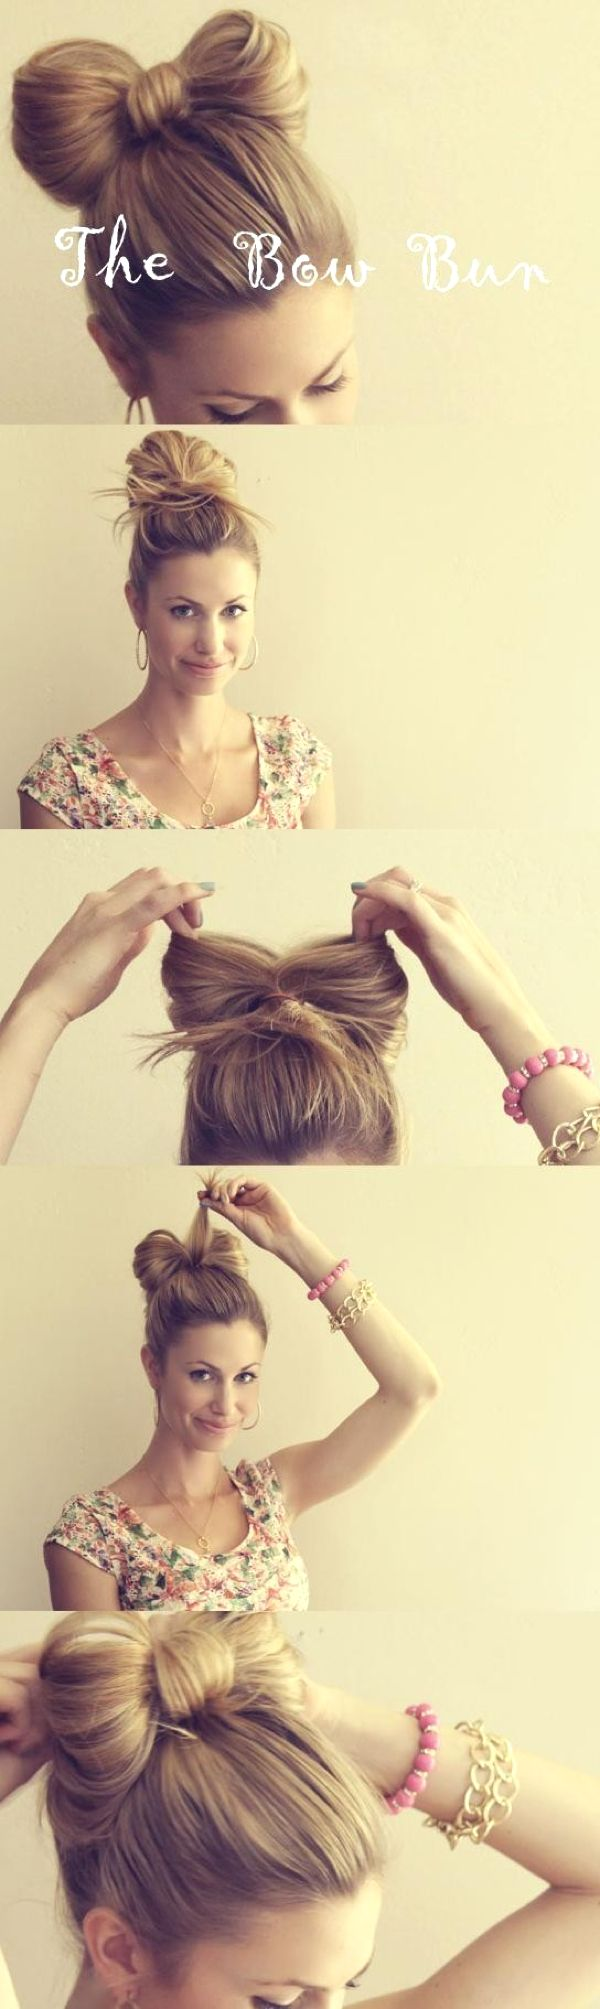 bow top bun(: totally trying this.and by the way I know this is random but can uall follow the person I pinned this from? She has an amazing account!